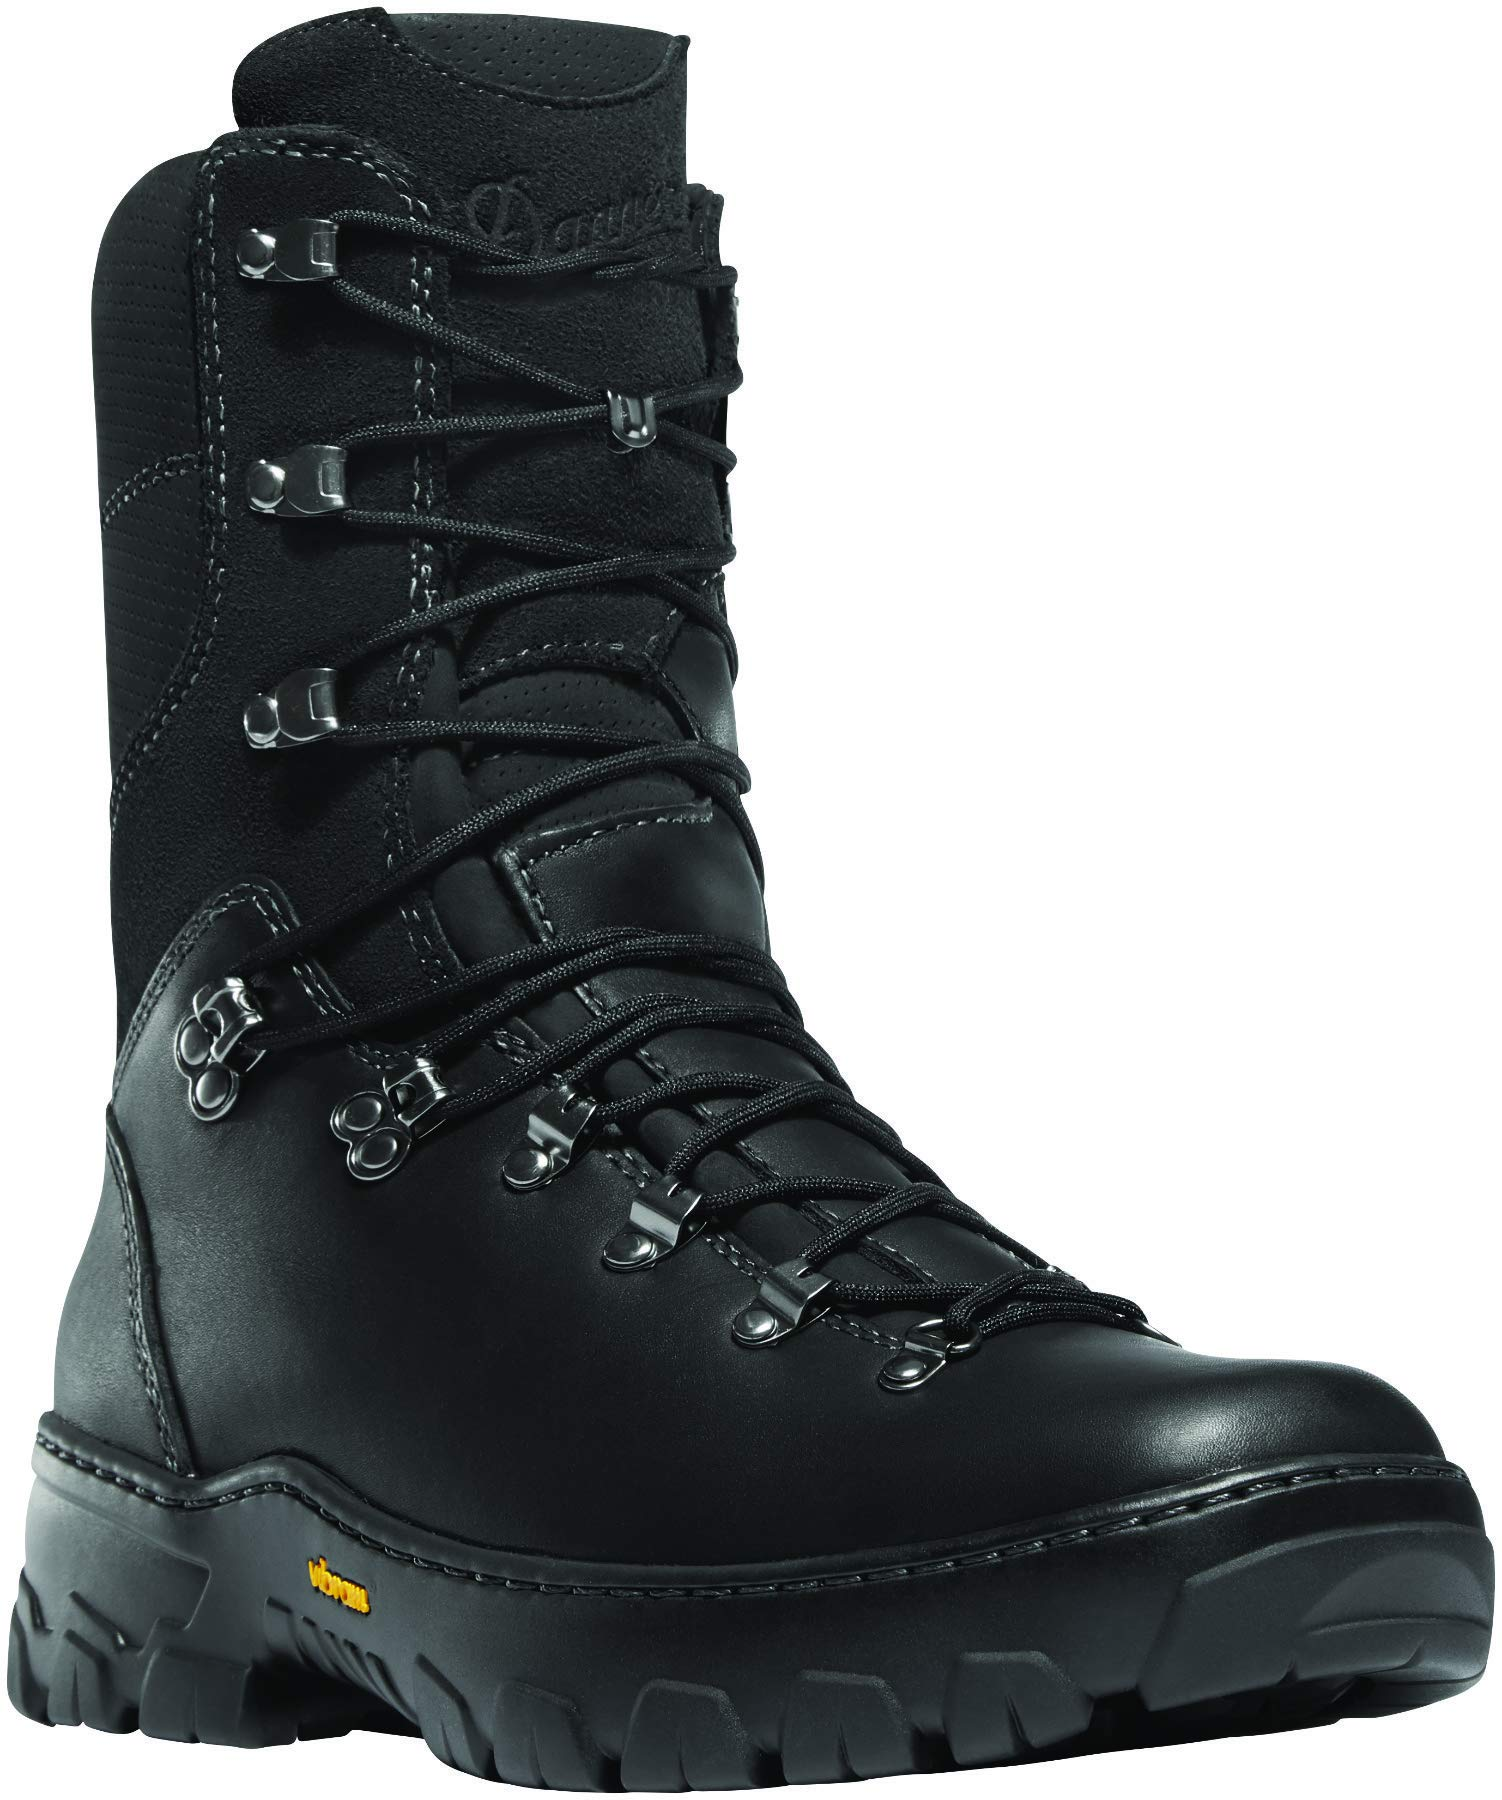 Danner Men's 18054 Wildland Tactical Firefighter 8'' Fire and Safety Boot, Black Smooth Out - 9.5 by Danner